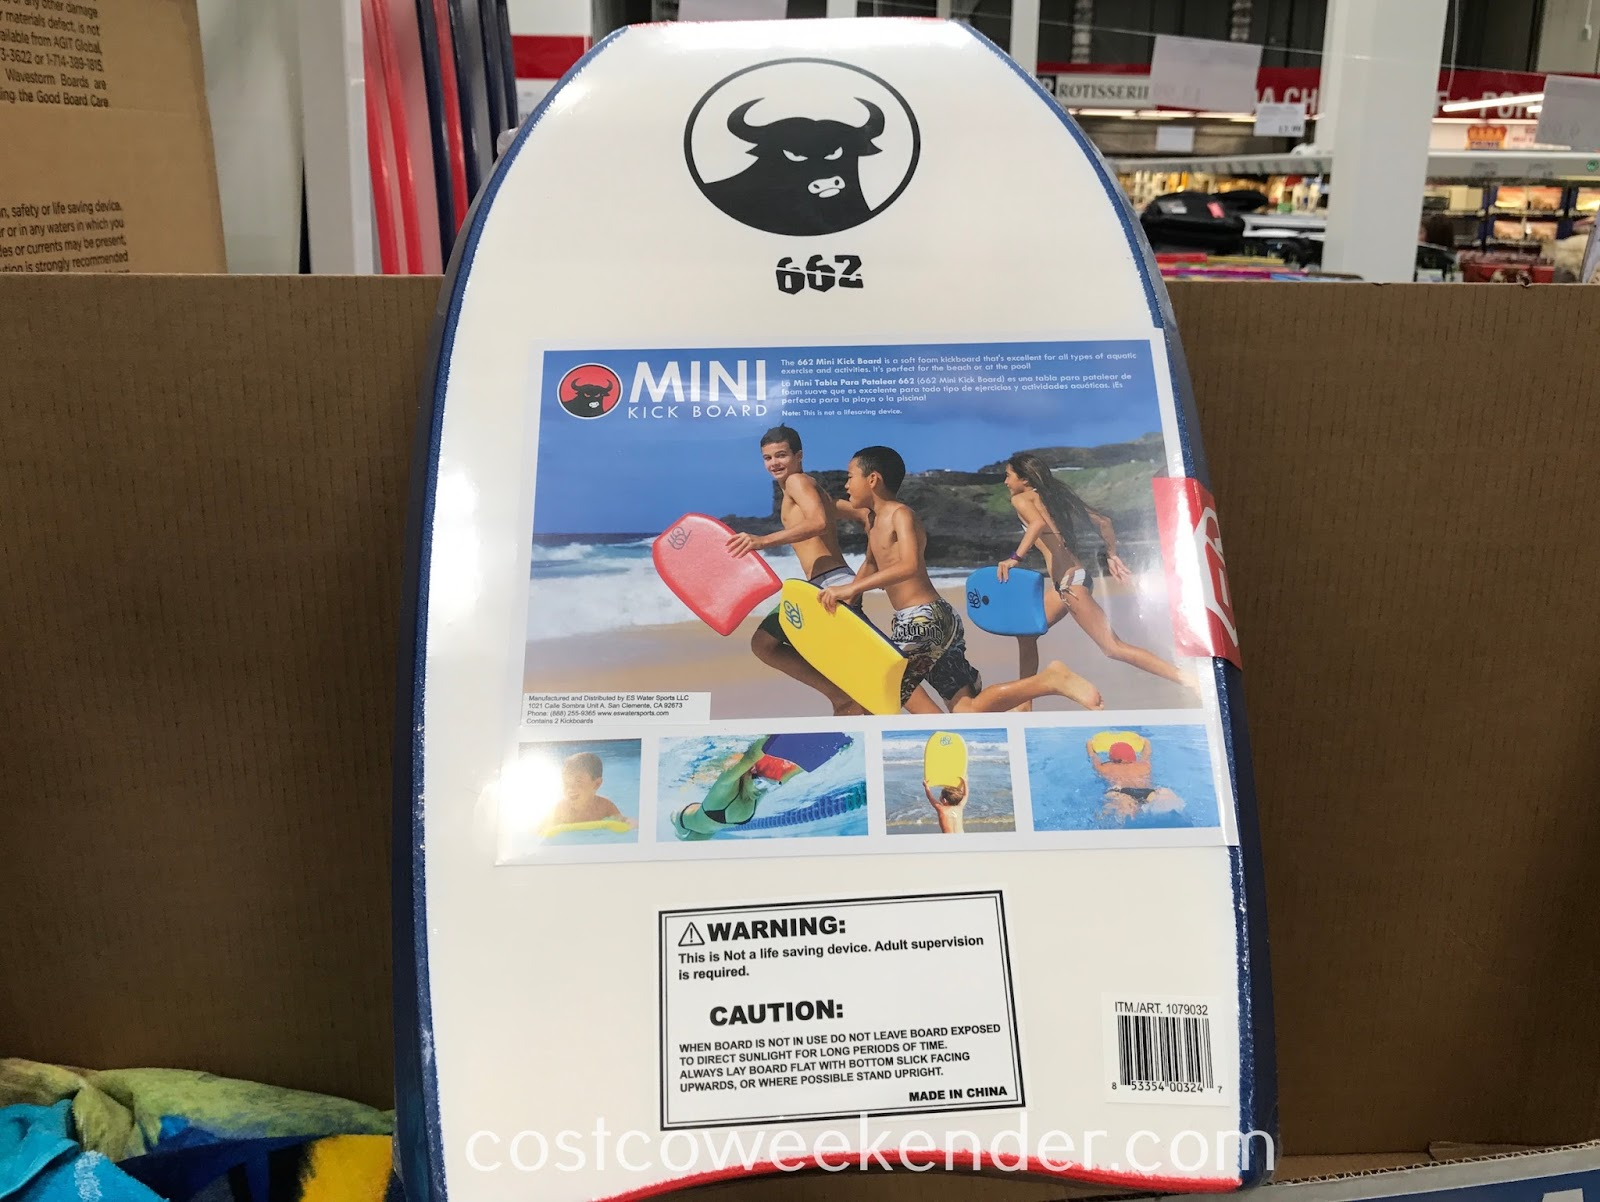 Costco 1079032 - 662 Mini Kick Board: great for a hot day at the beach or the pool